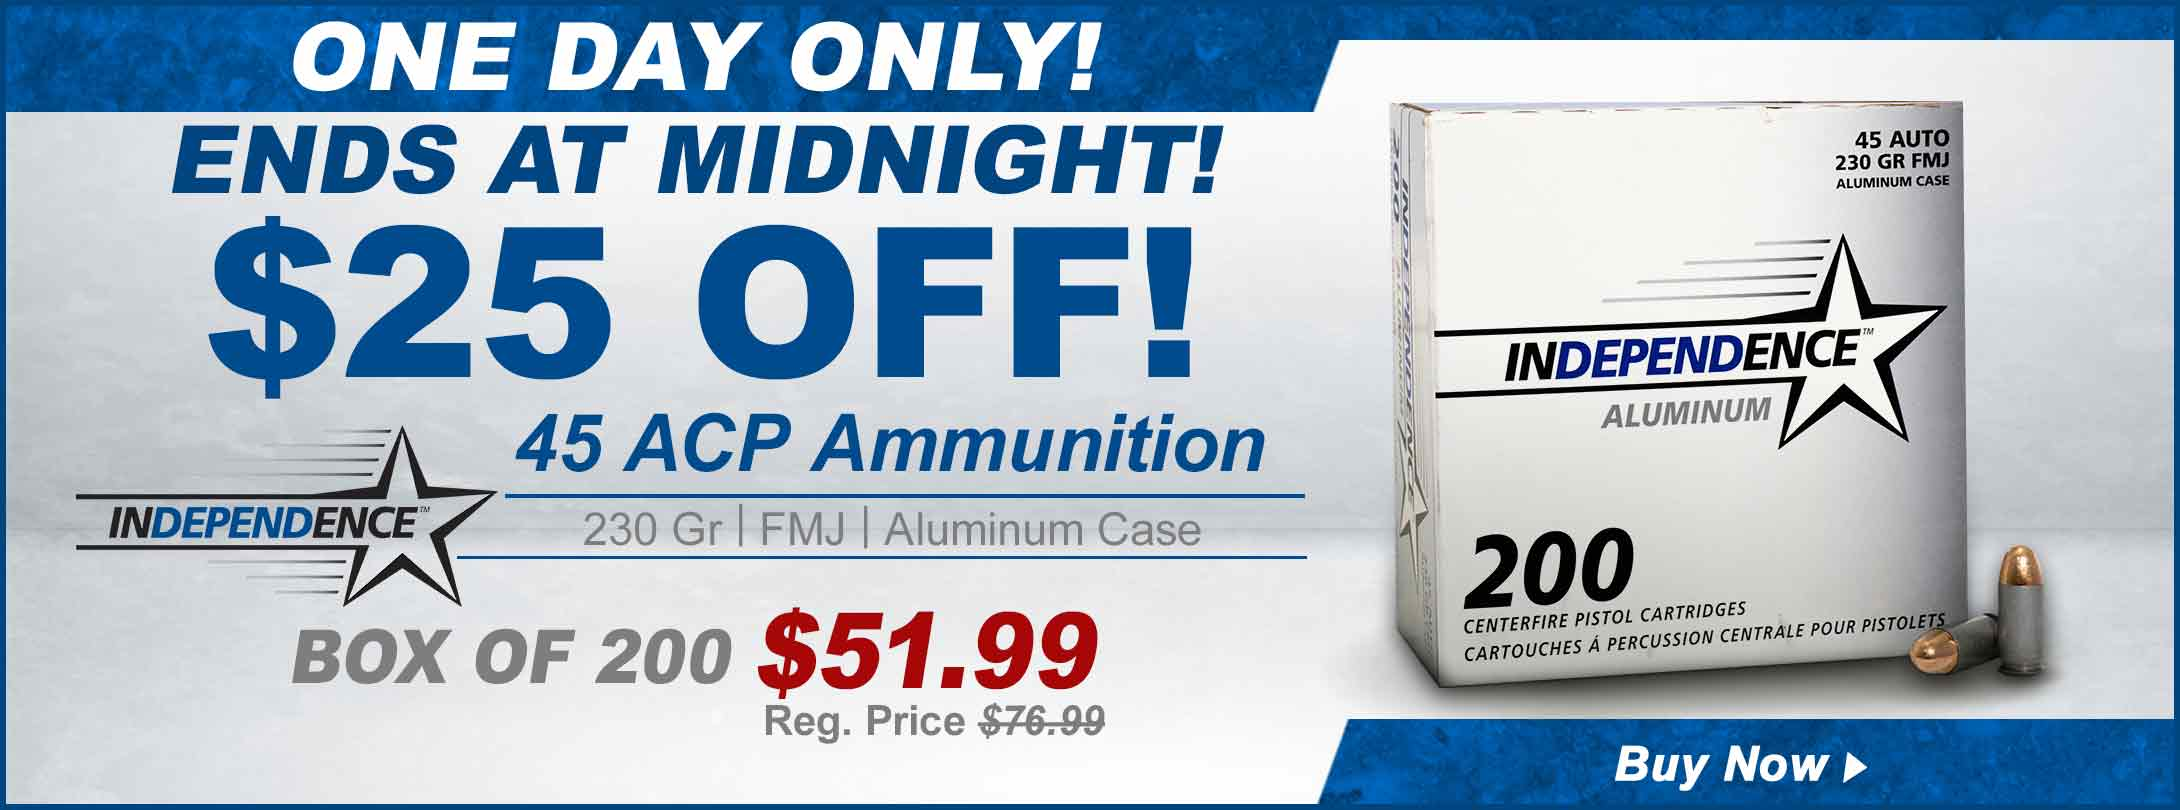 Save on Independence 45 ACP Ammo!